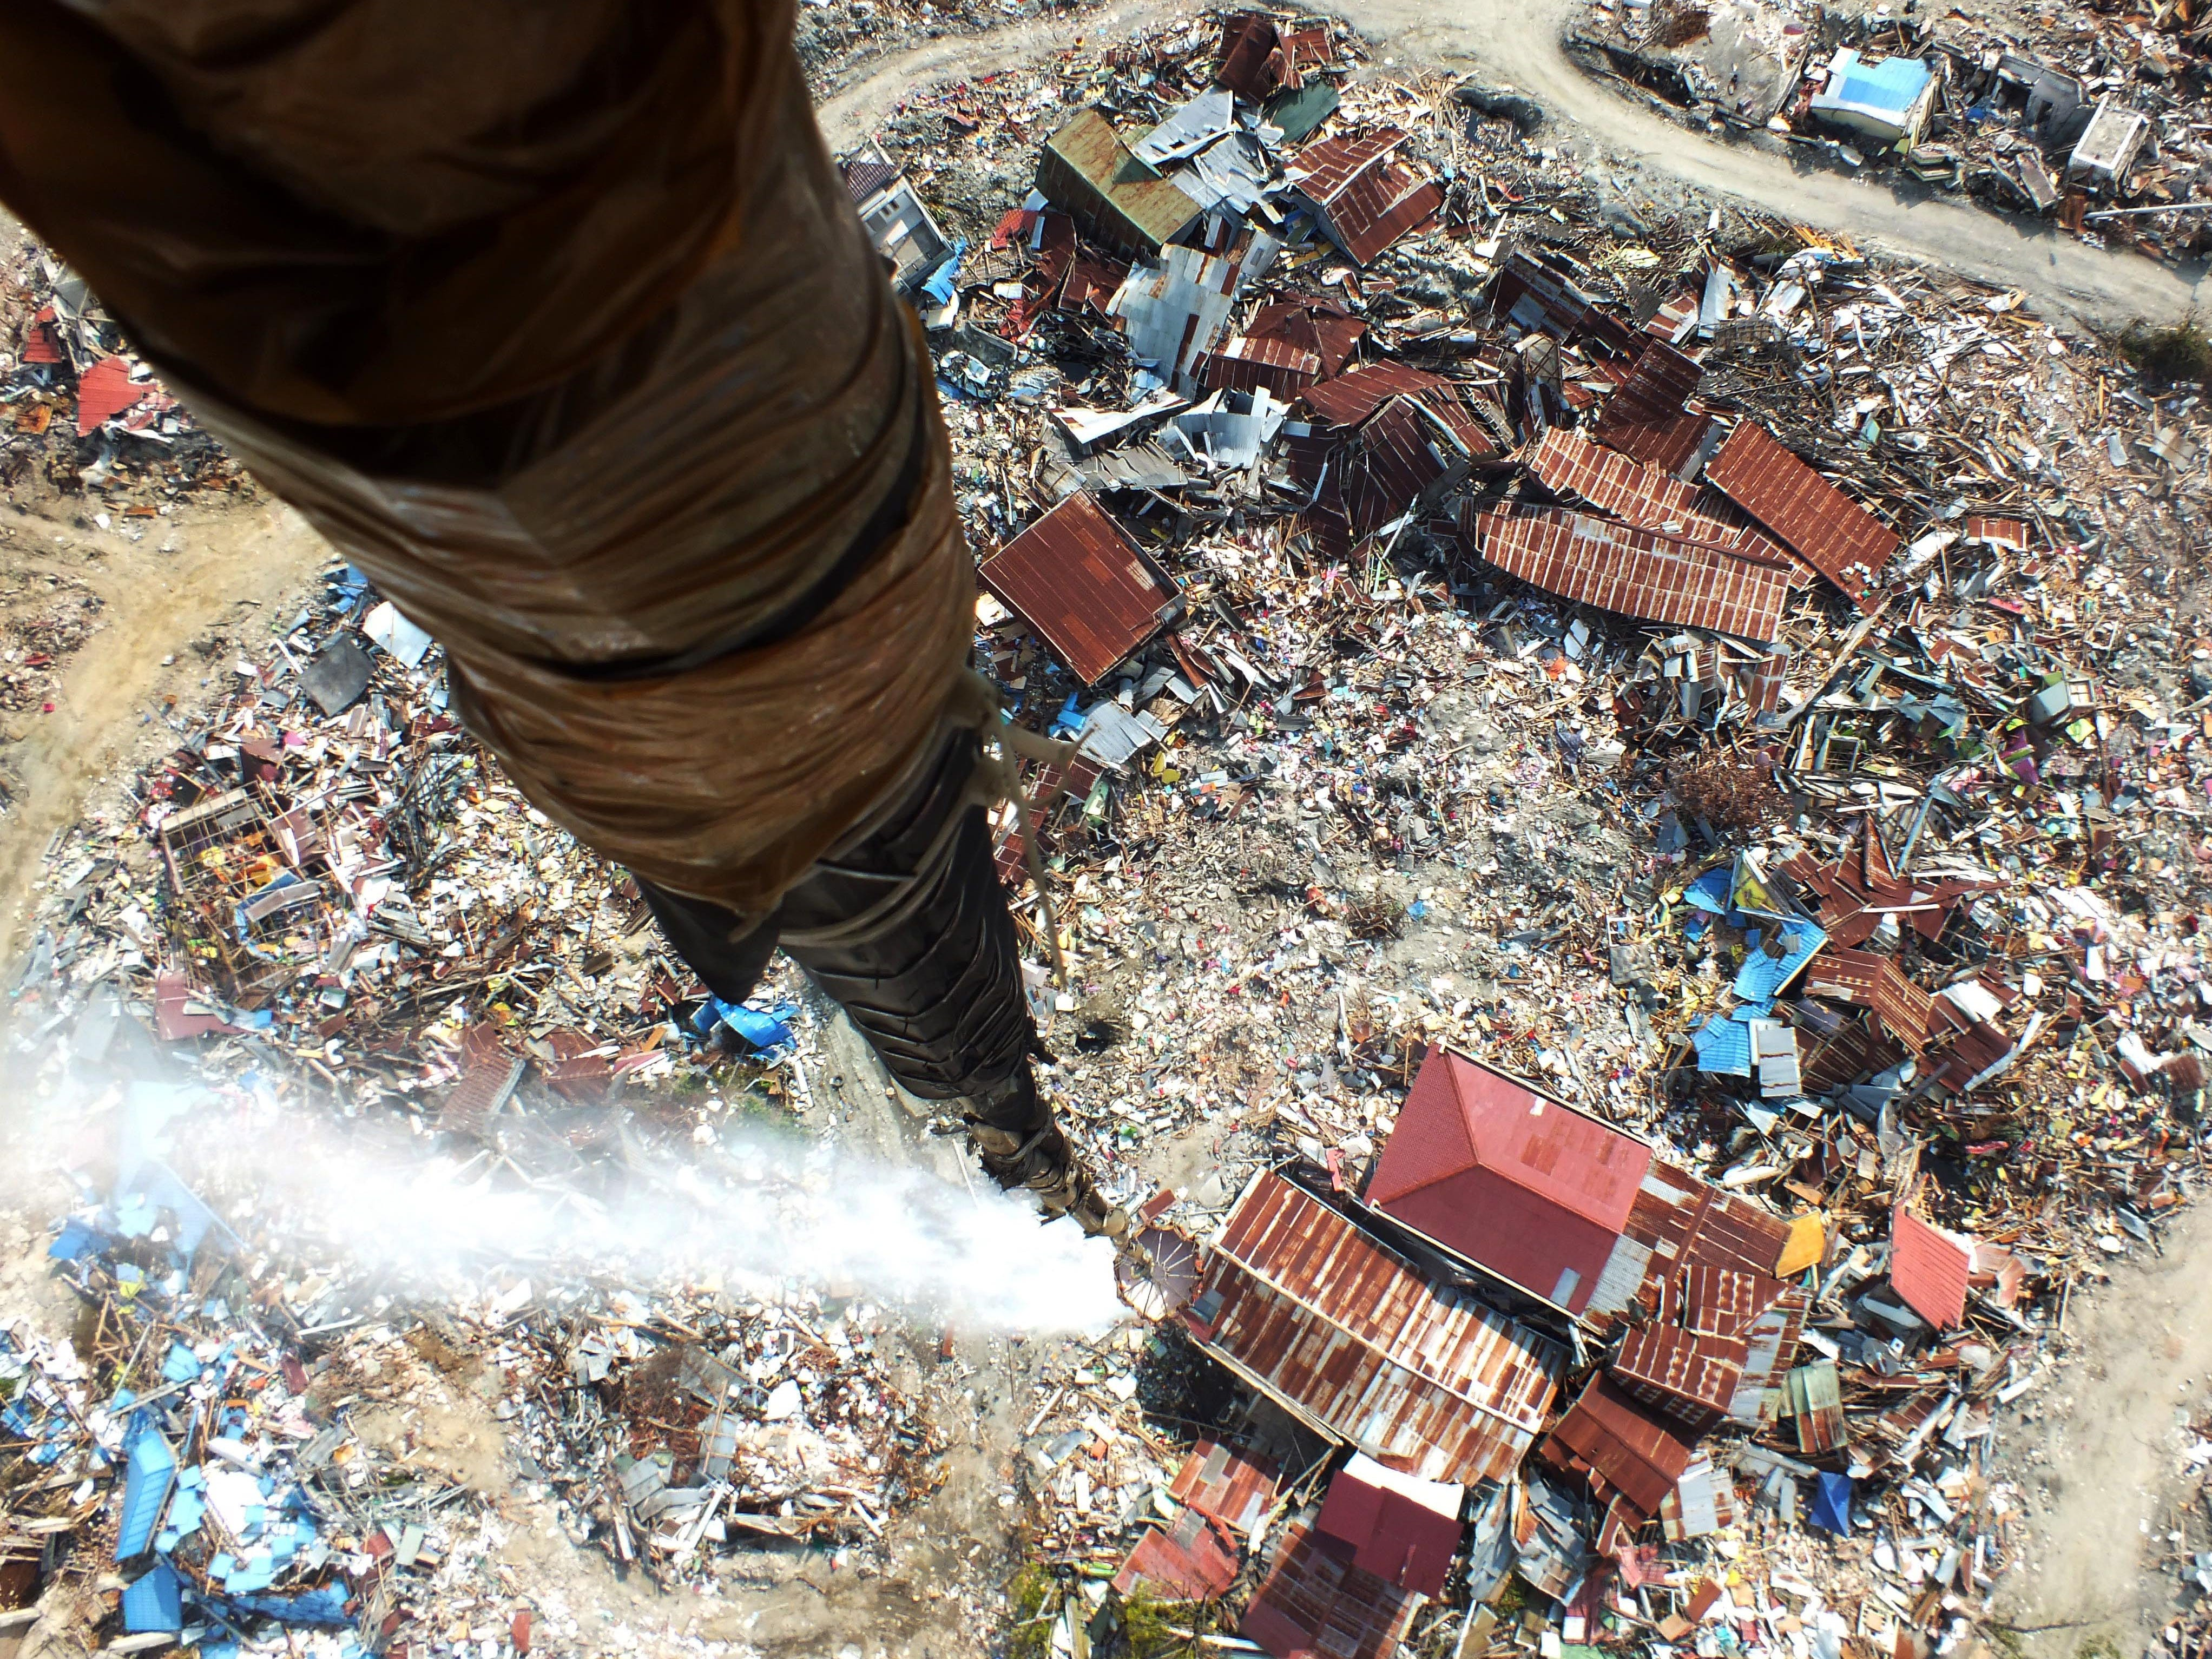 This picture taken from a helicopter on Oct. 18, 2018, shows disinfectant being released over an area affected by the Sept. 28 earthquake and where thousands are still feared buried, in an attempt to sterilize it in Palu. The World Bank on Oct. 14 announced funding of up to $1 billion for Indonesia after it was rocked by a string of recent disasters, including a deadly earthquake-tsunami that killed thousands.